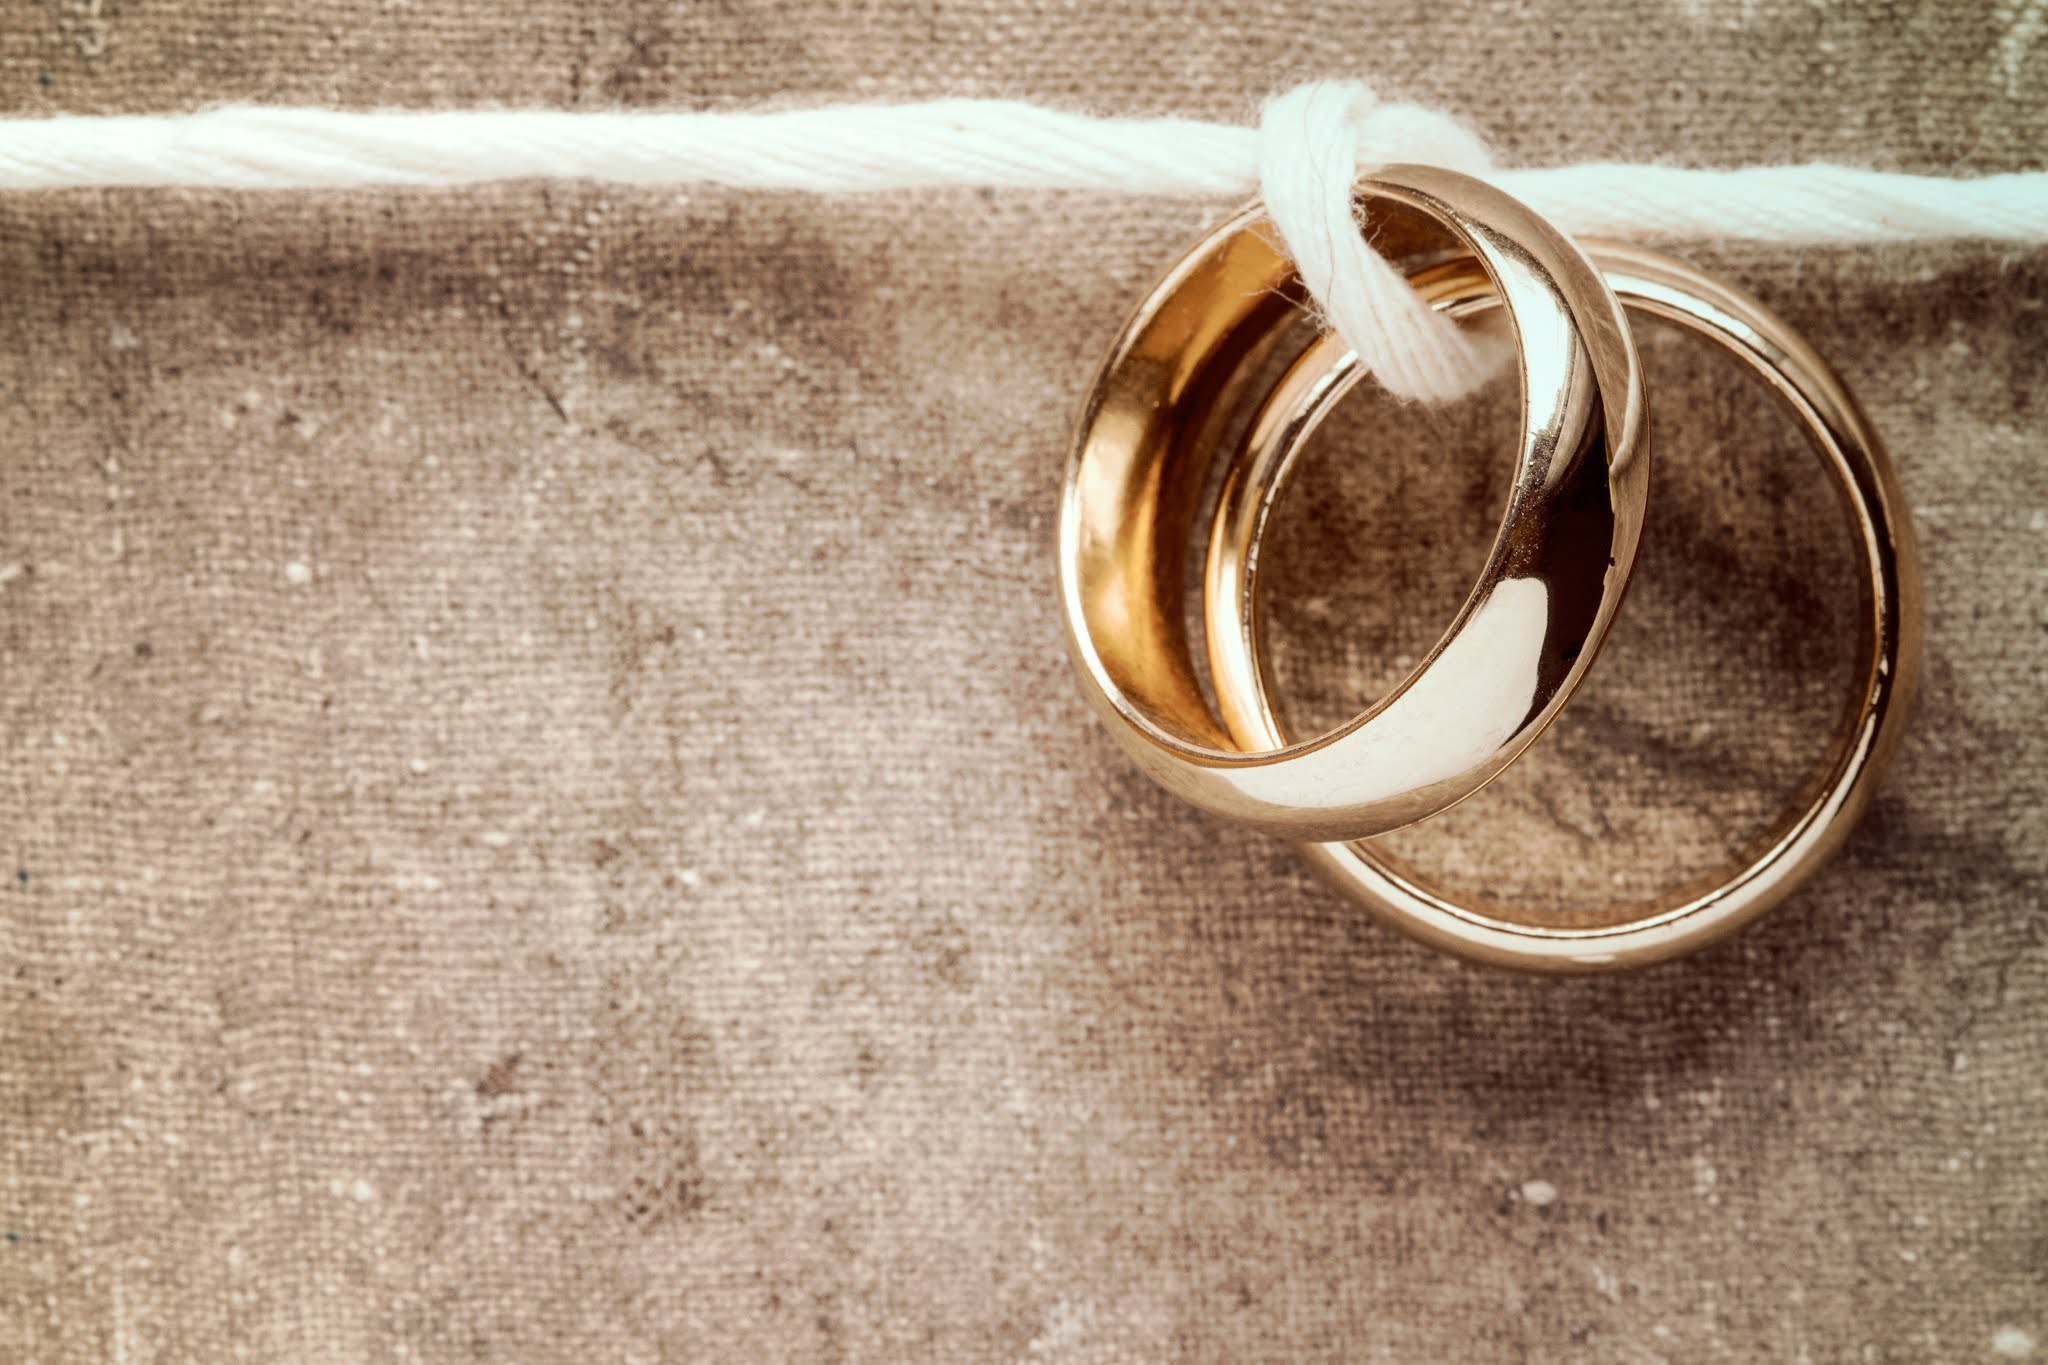 5 Strategies To Start Your Marriage With Healthy Communication